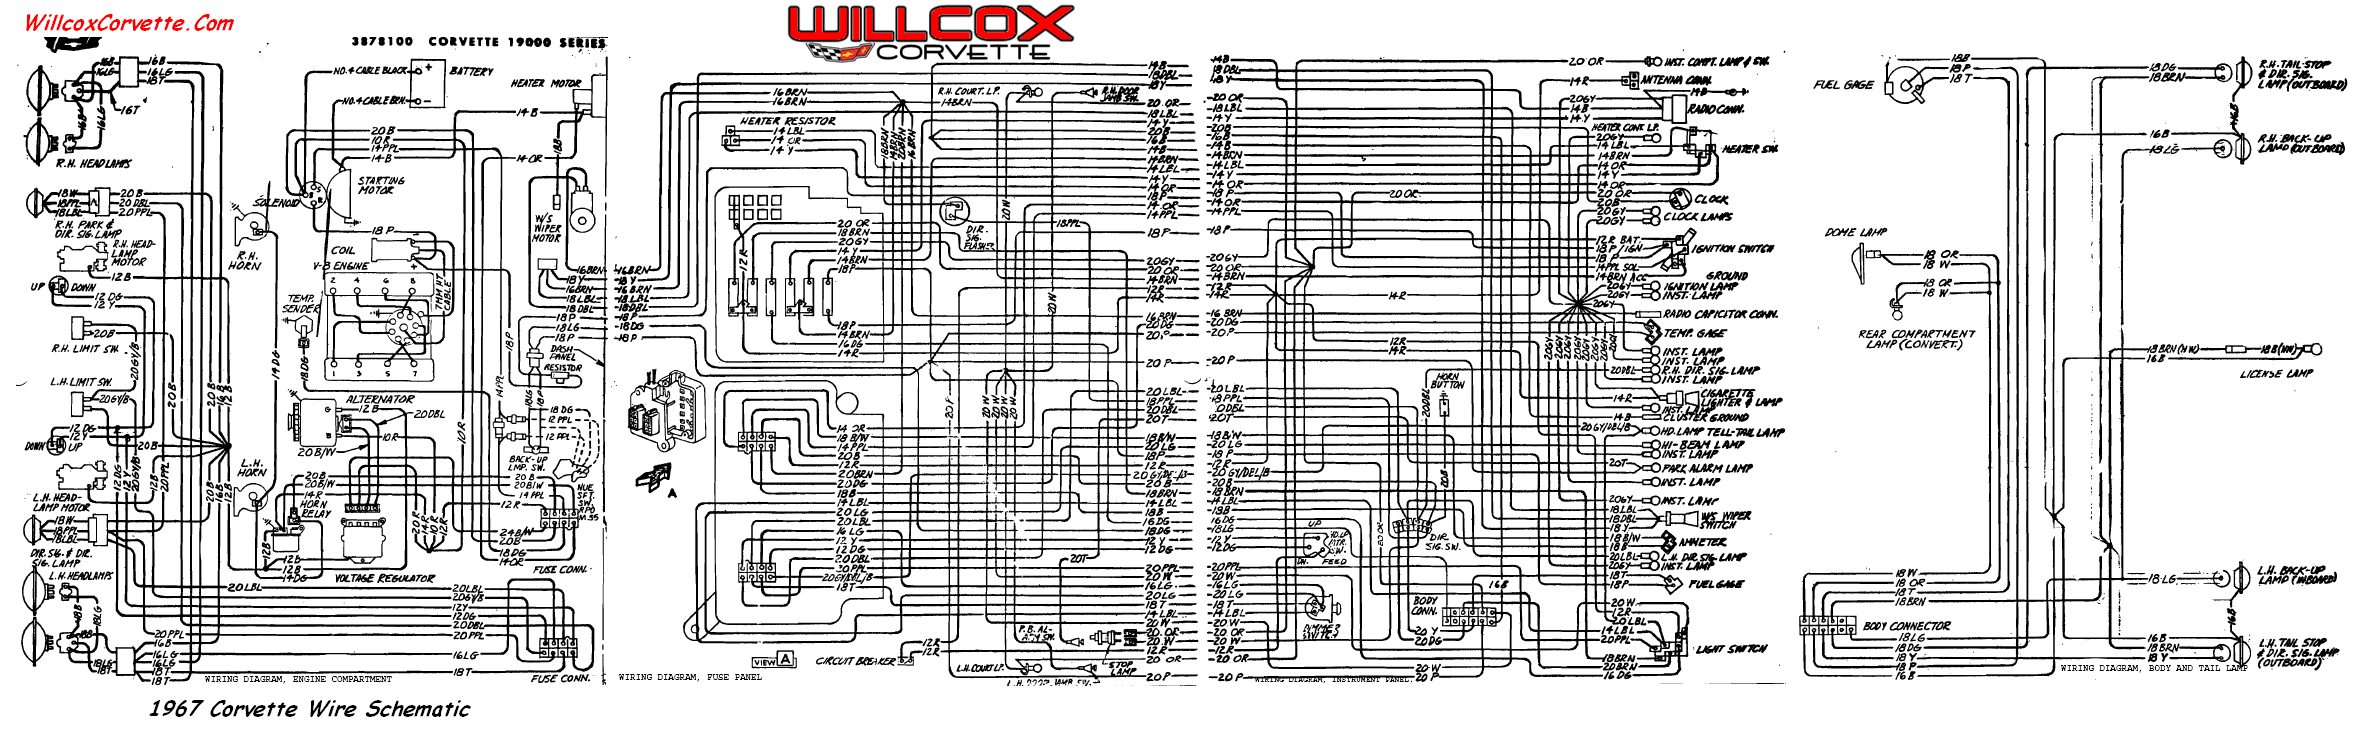 1967 corvette wiring diagram tracer schematic willcox corvette inc rh repairs willcoxcorvette com 2005 c6 corvette wiring diagram 2005 corvette stereo wiring diagram